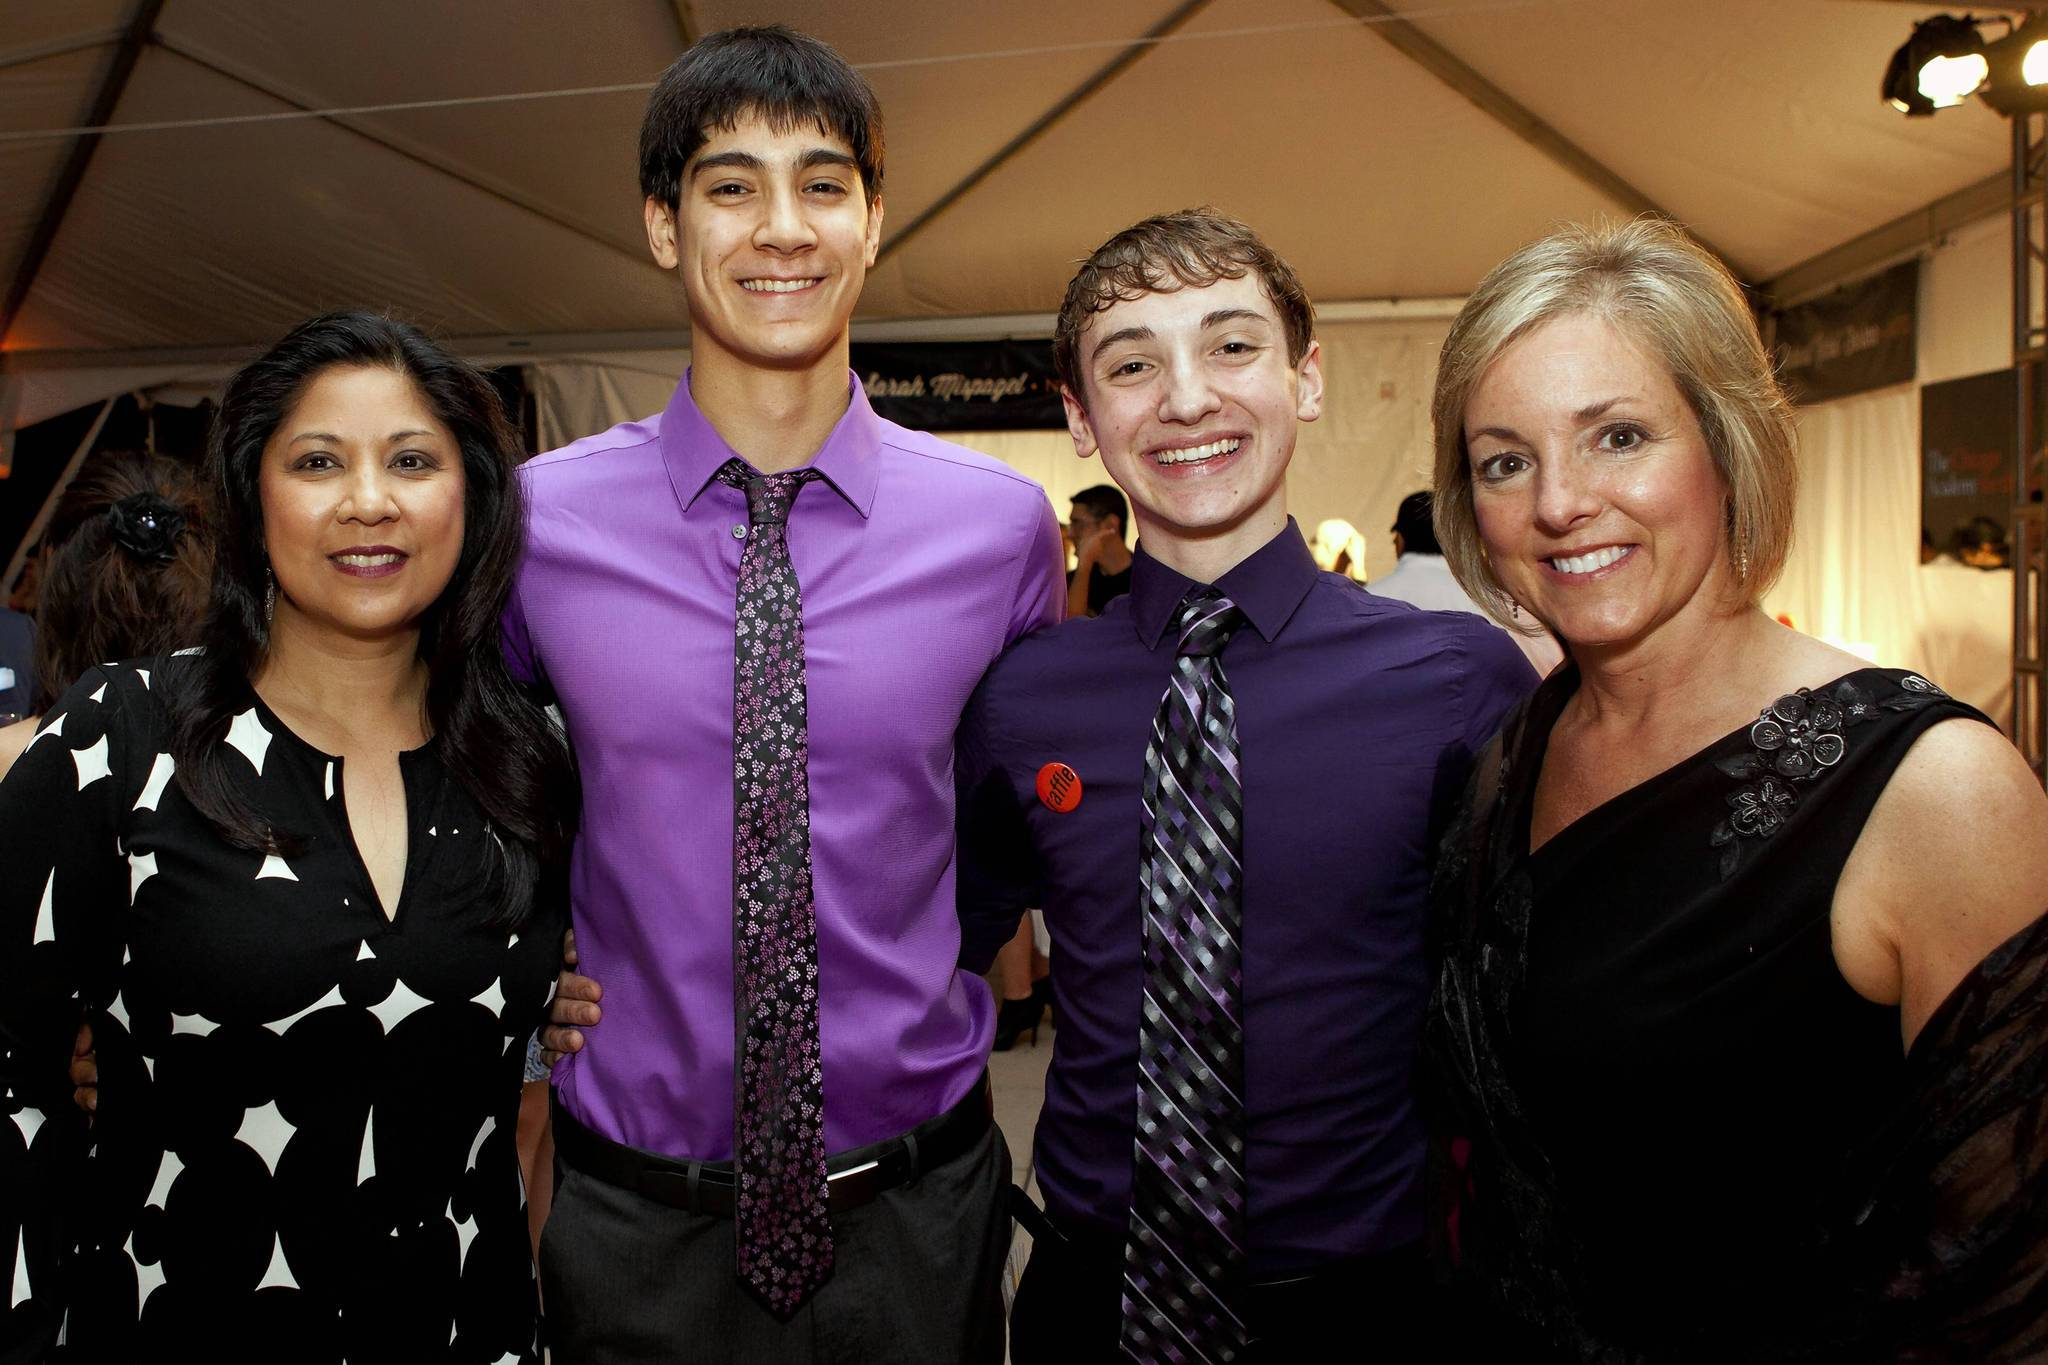 Teresa Aguinaldo; Zachary Gonder, a senior at CAA who will attend Juilliard; Joey Massarelli, a senior at the CAA, who will attend Juilliard; and Catherine Massarelli at the Taste for the Arts Gala at Millennium Park.